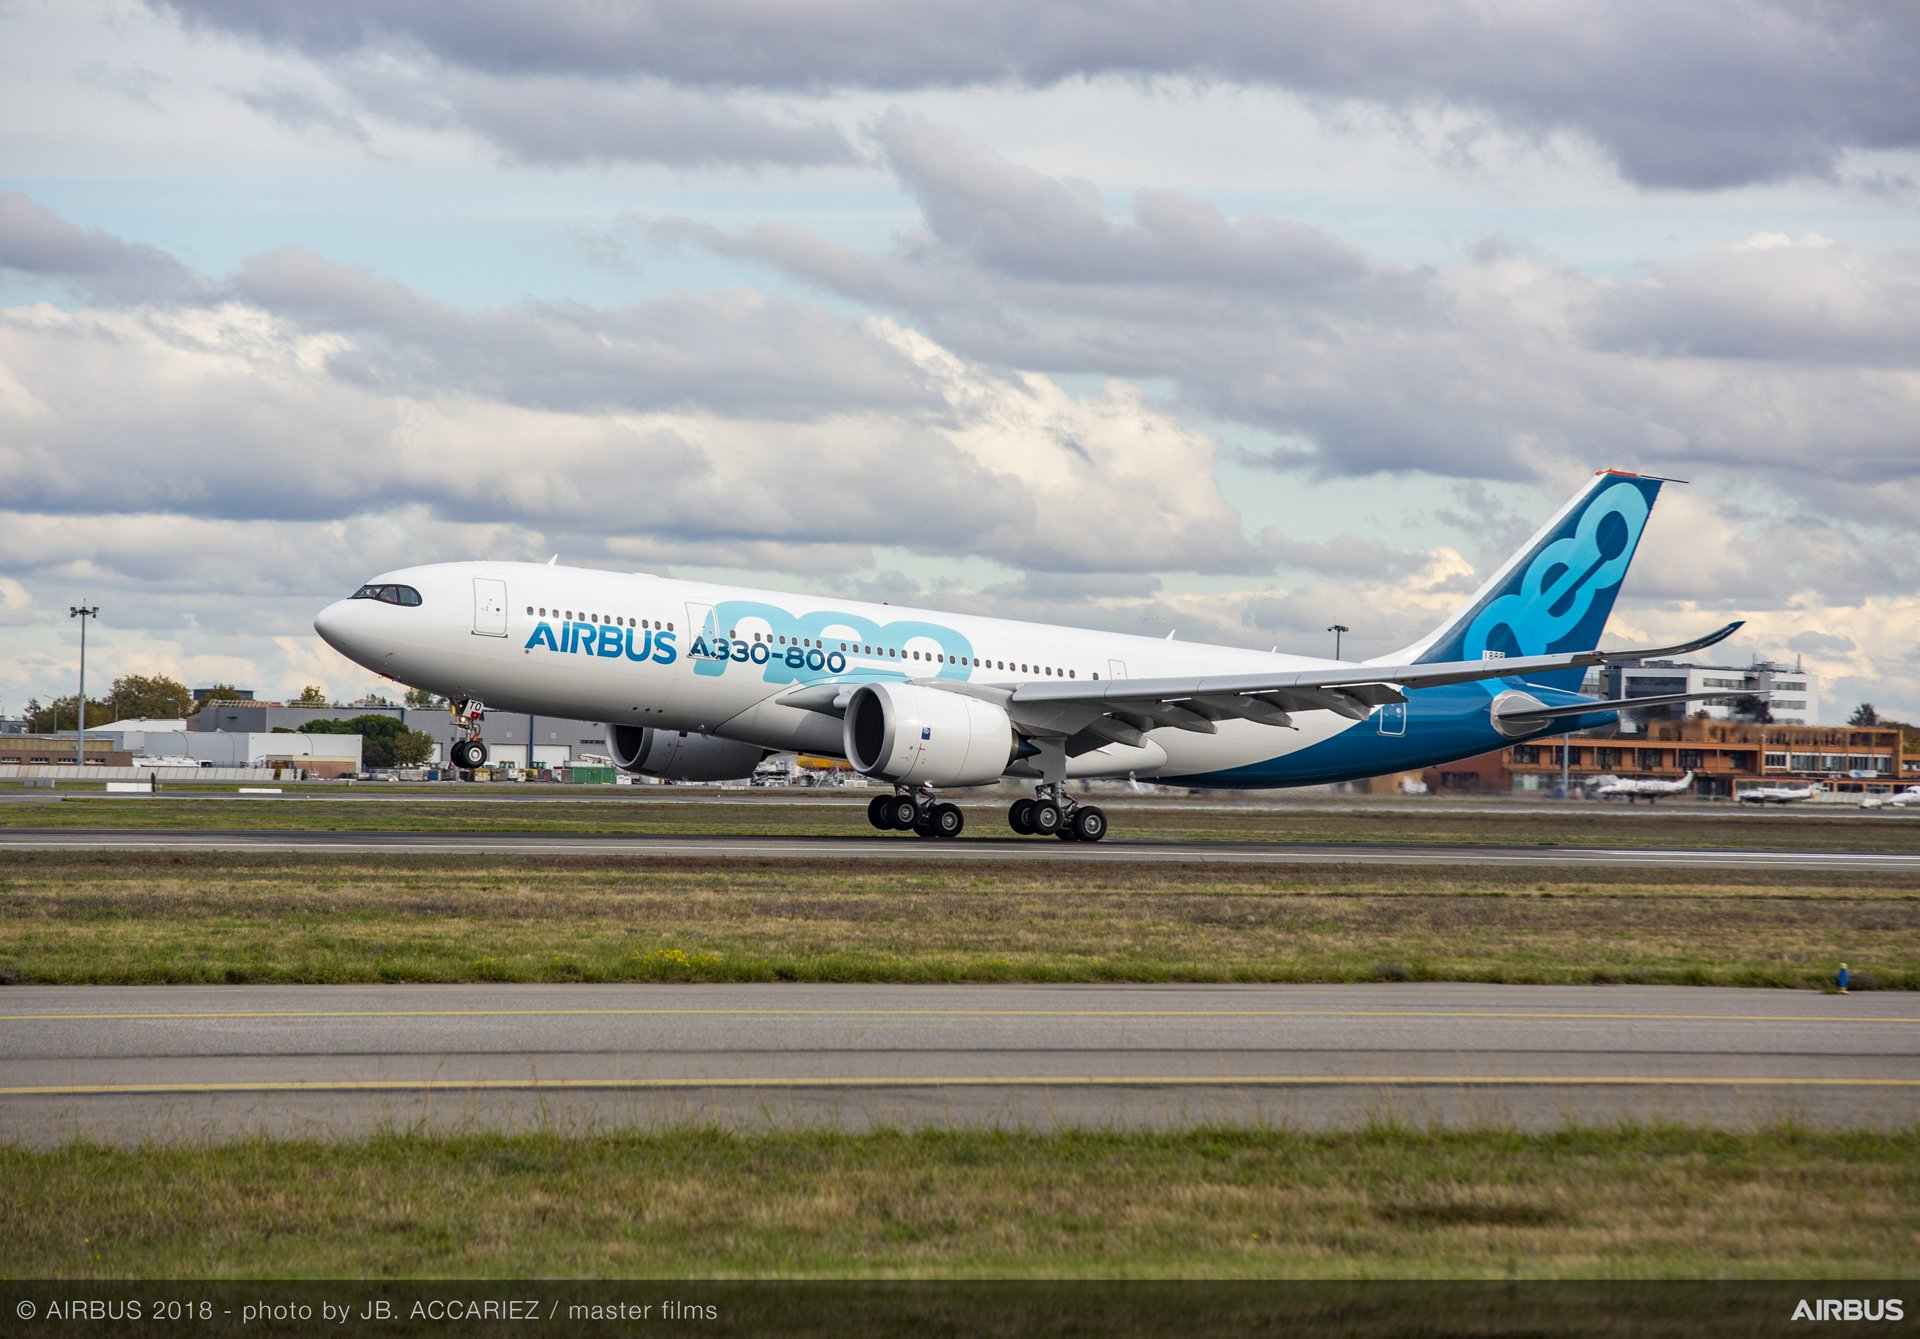 Airbus A330-800 landing after its first flight